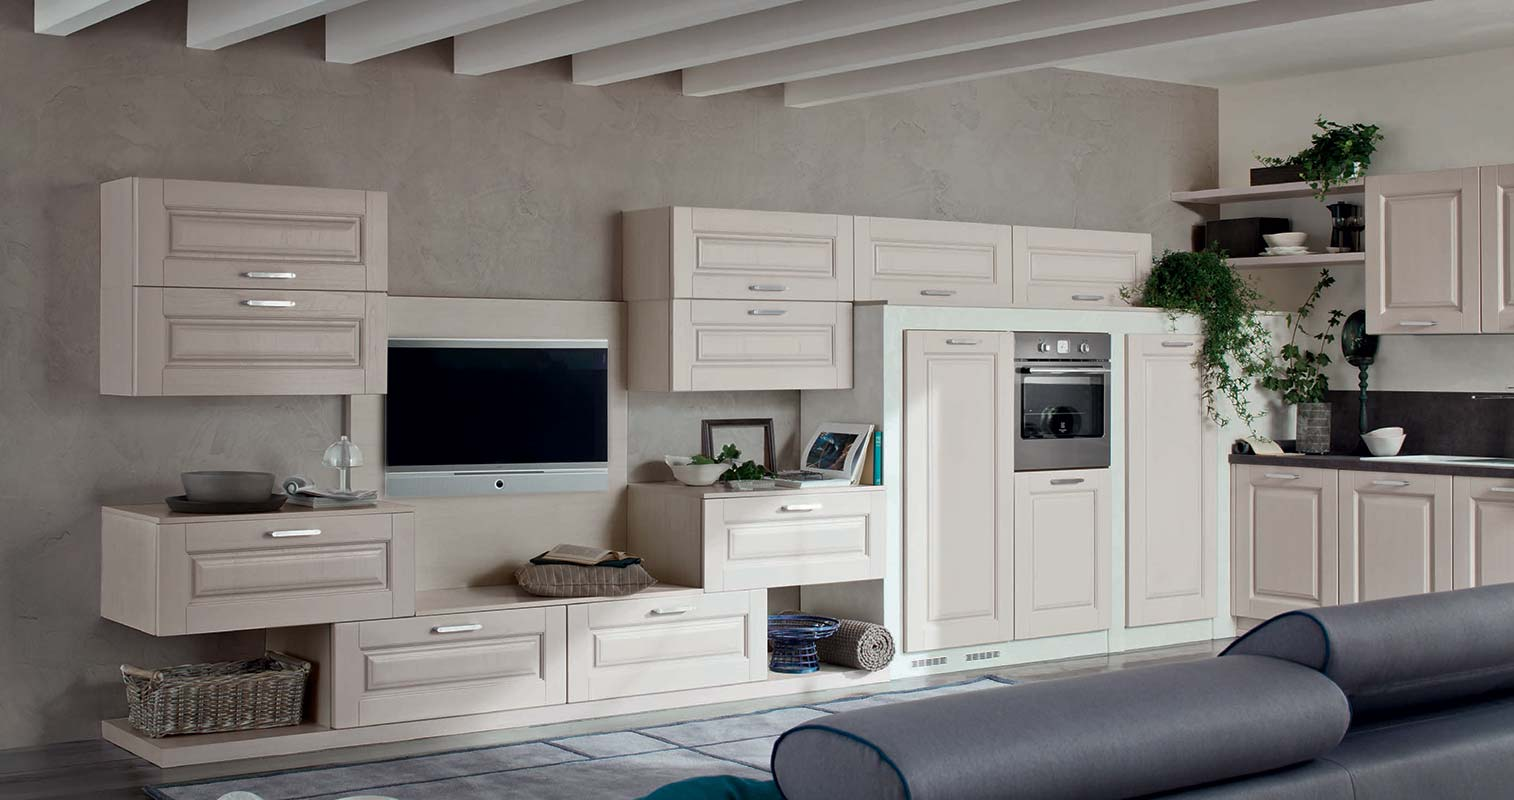 Beautiful Ar Tre Cucine Opinioni Photos - Acomo.us - acomo.us